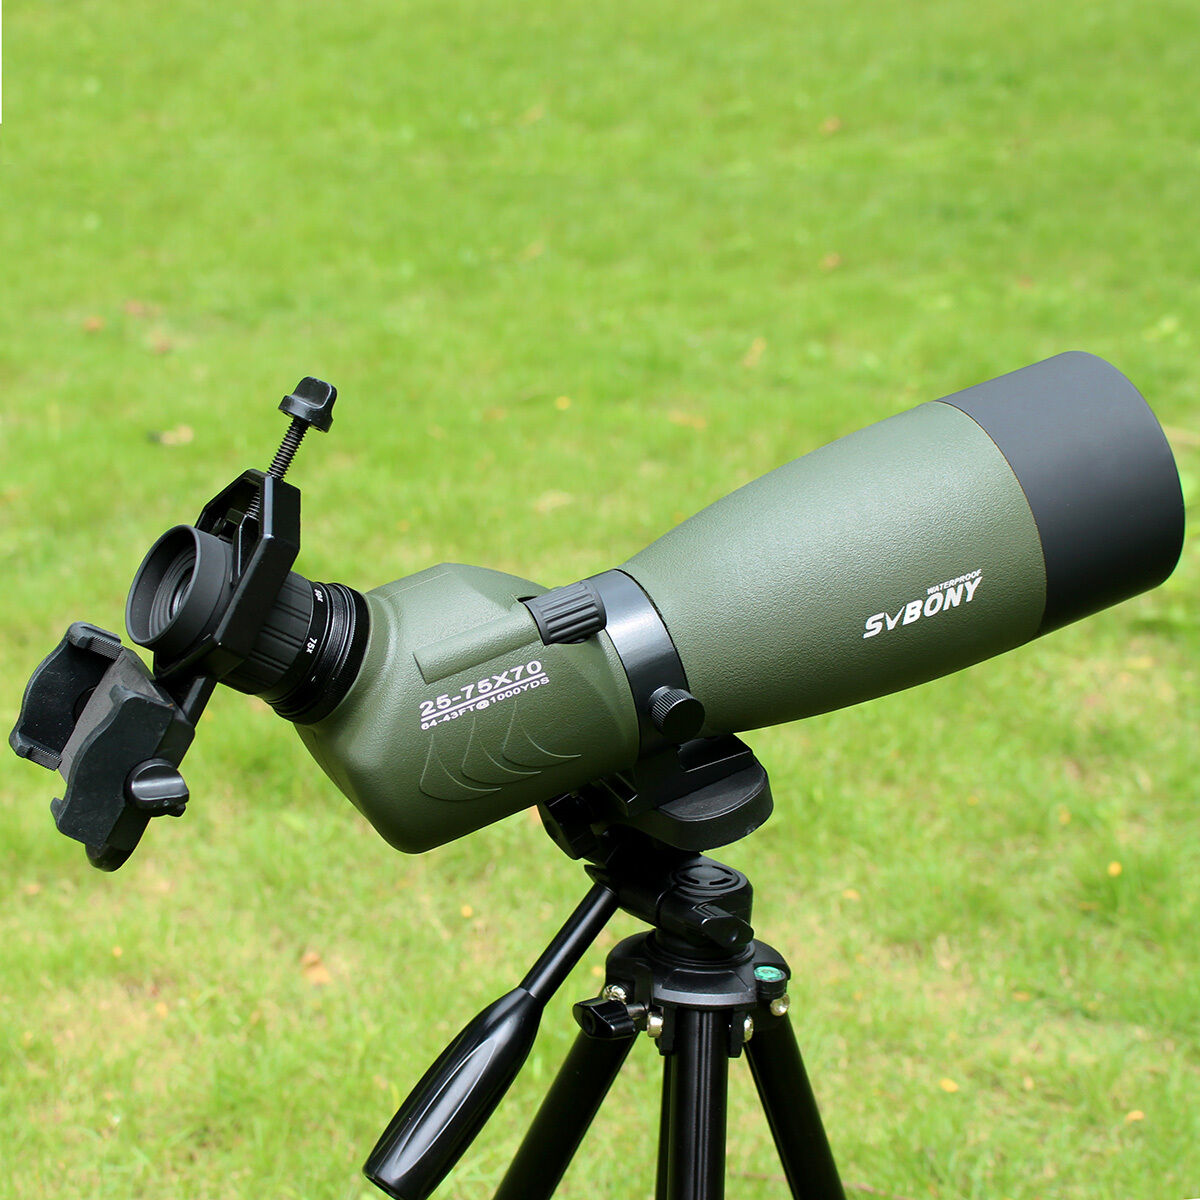 SVBONY FMC 25-75x70mm &Cell Angled Zoom Spotting Scope w/ Tripod &Cell 25-75x70mm Phone Adapter d402fb